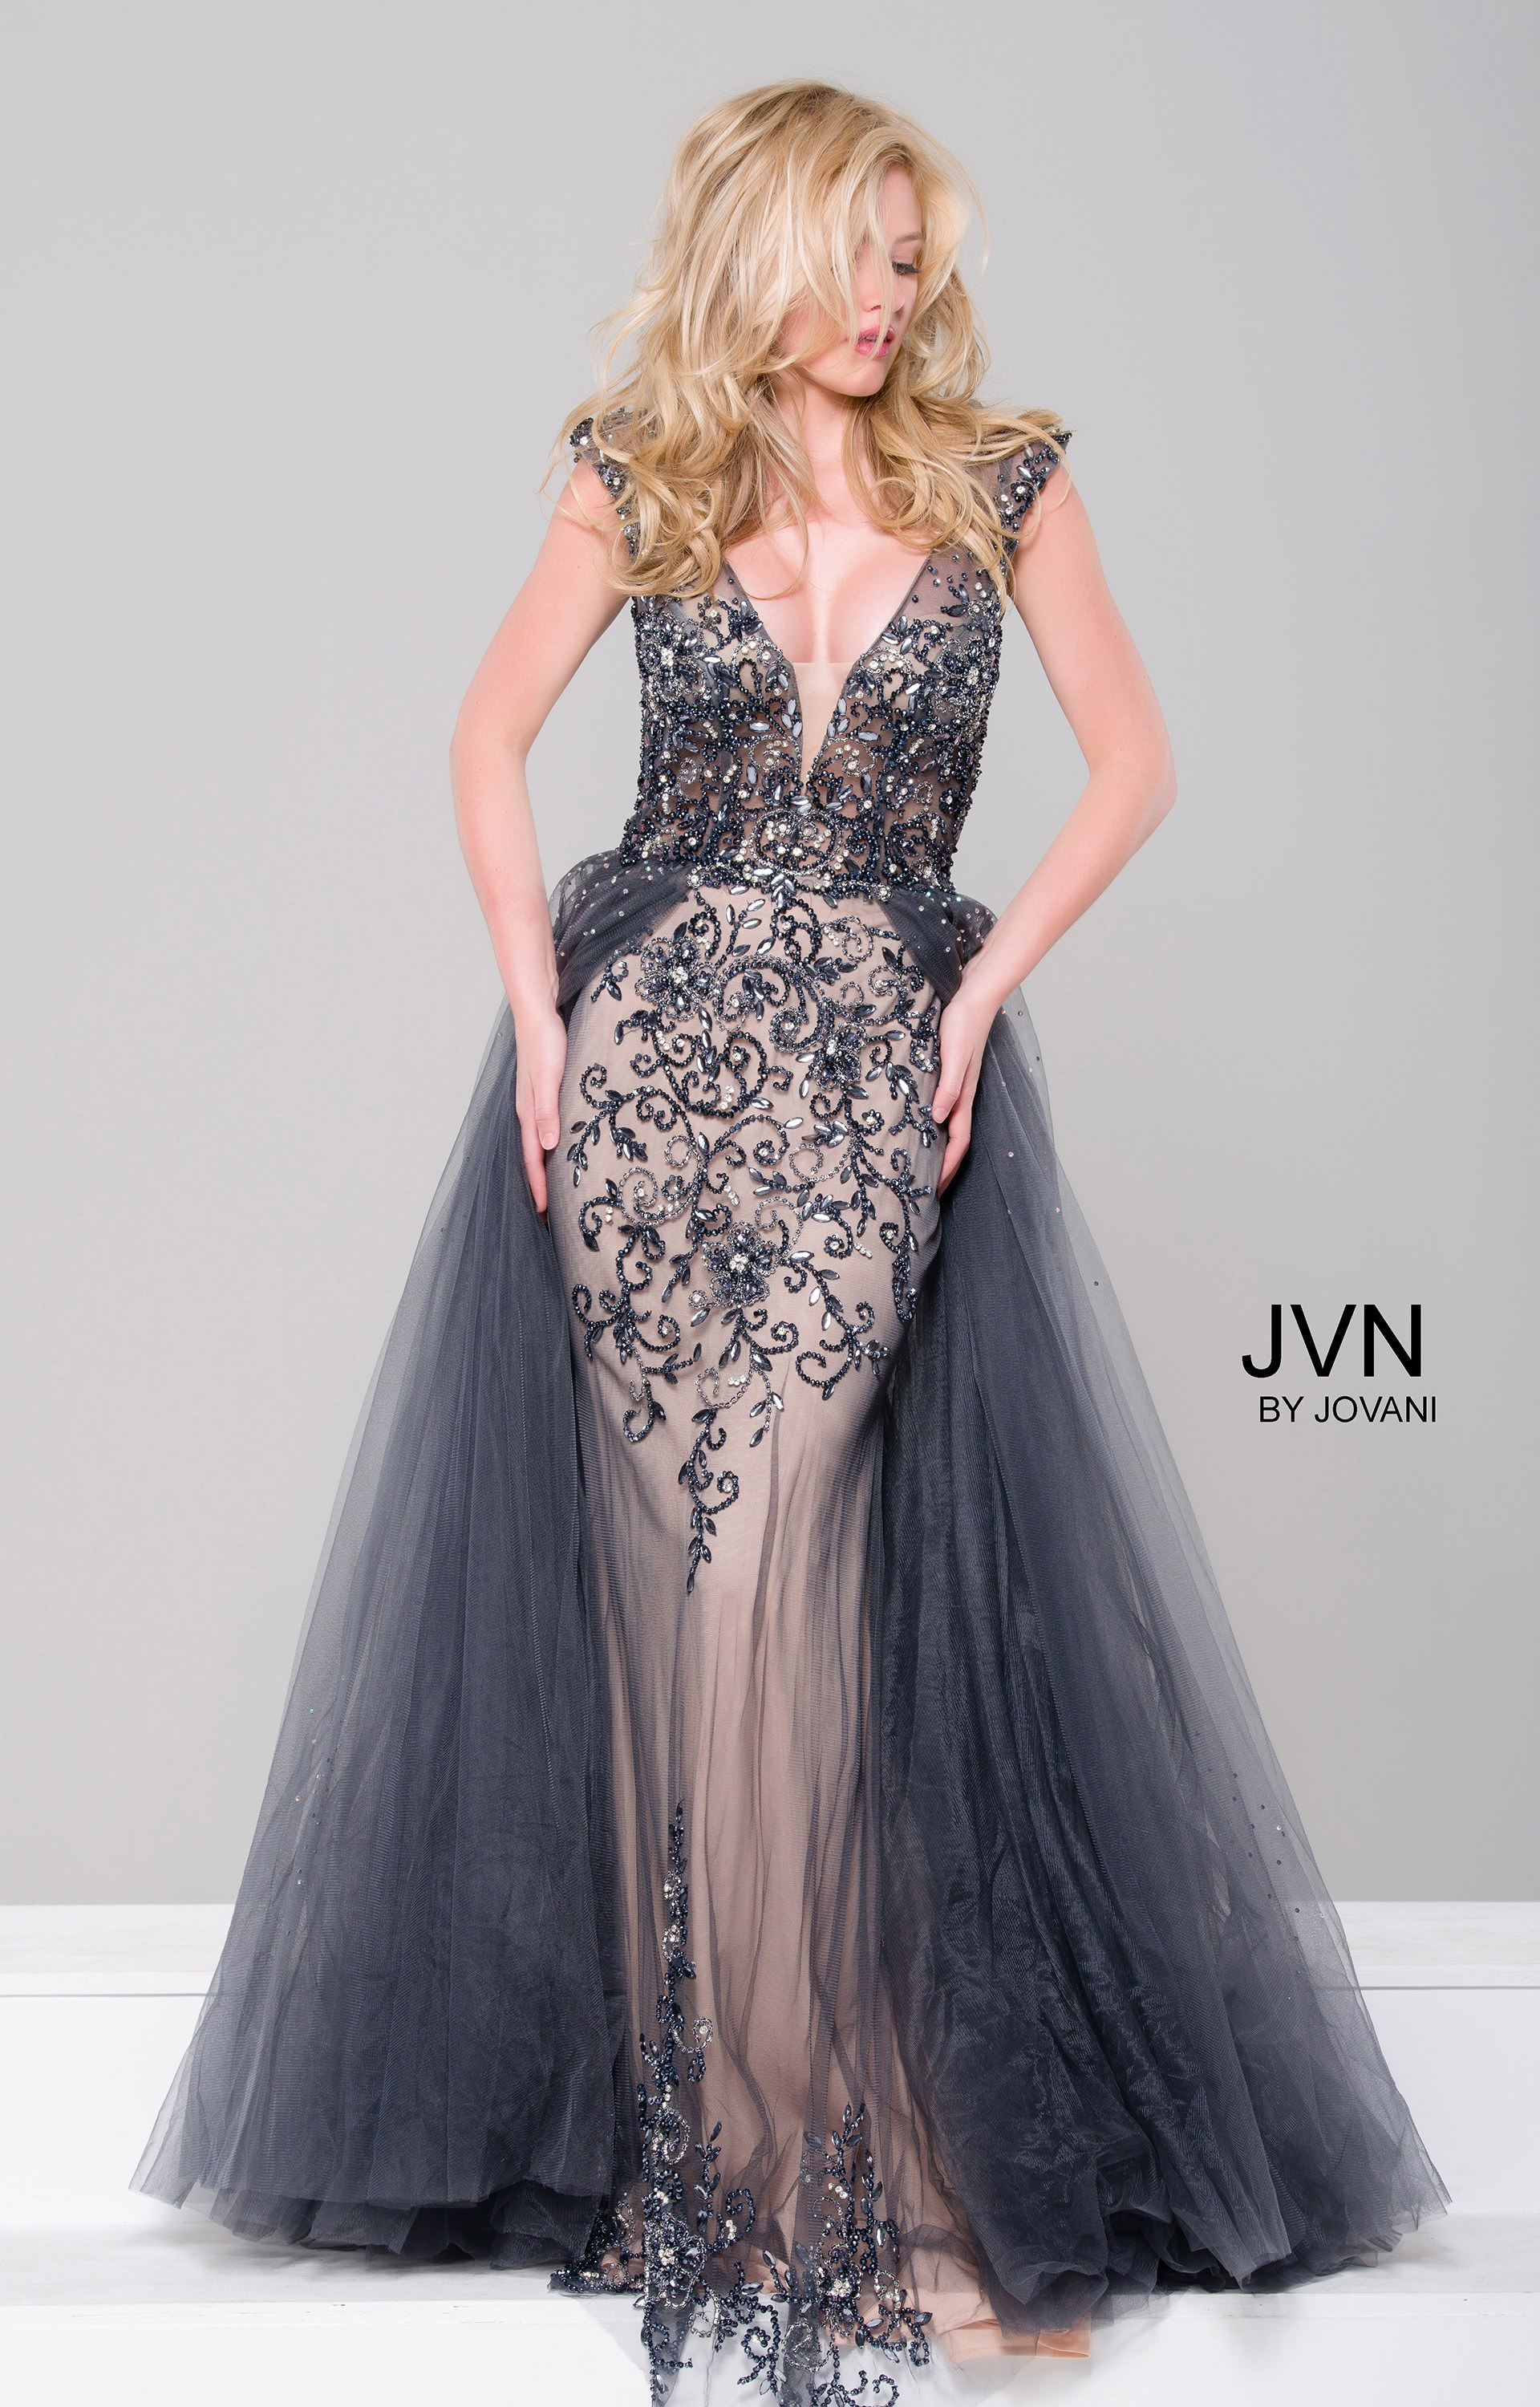 Jovani jvn46081 - Extravagant Floor Length Gown with Cape Skirt Prom ...